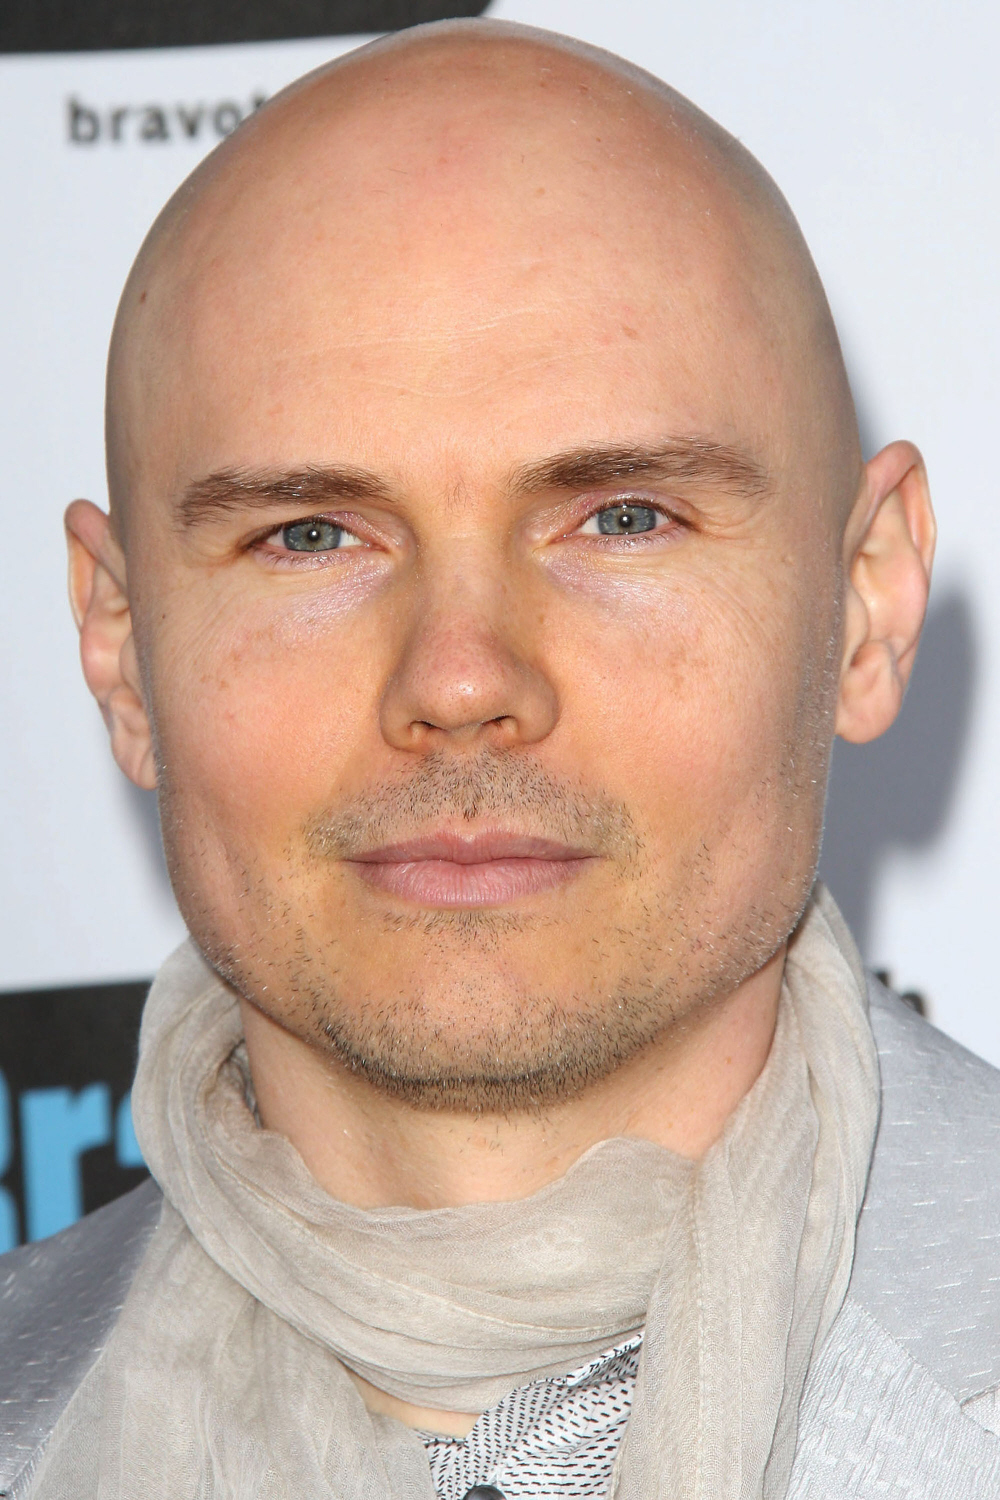 billy corgan sonbilly corgan 1993, billy corgan strat, billy corgan zero shirt, billy corgan 2016, billy corgan wife, billy corgan gear, billy corgan twitter, billy corgan guitar rig, billy corgan 1994, billy corgan natal chart, billy corgan wiki, billy corgan depeche mode, billy corgan zero, billy corgan son, billy corgan simpsons, billy corgan net worth, billy corgan smashing pumpkins, billy corgan about cobain, billy corgan - the future embrace, billy corgan james iha